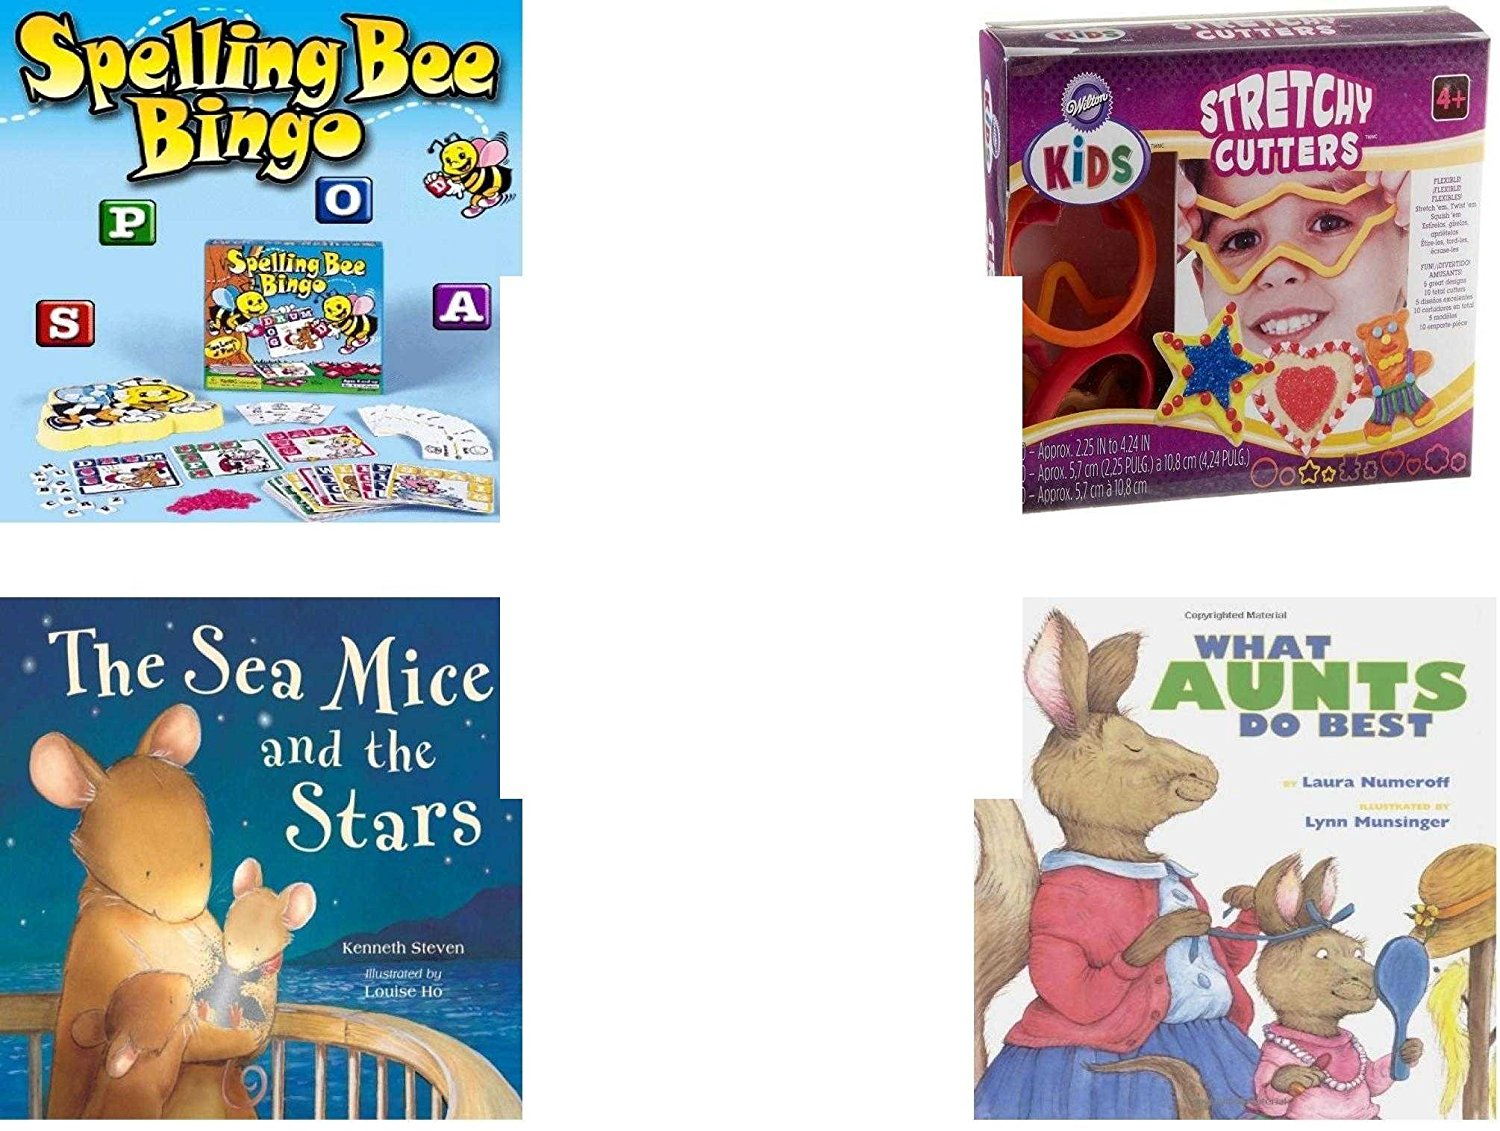 Children's Gift Bundle - Ages 3-5 [5 Piece] - Spelling Bee Bingo Game - Wilton Kids Stretchy Silicone Cookie Cutter Set, 10-Piece - Ty Beanie Baby - Beani the Gray Cat - Sea Mice & the Stars Hardcov